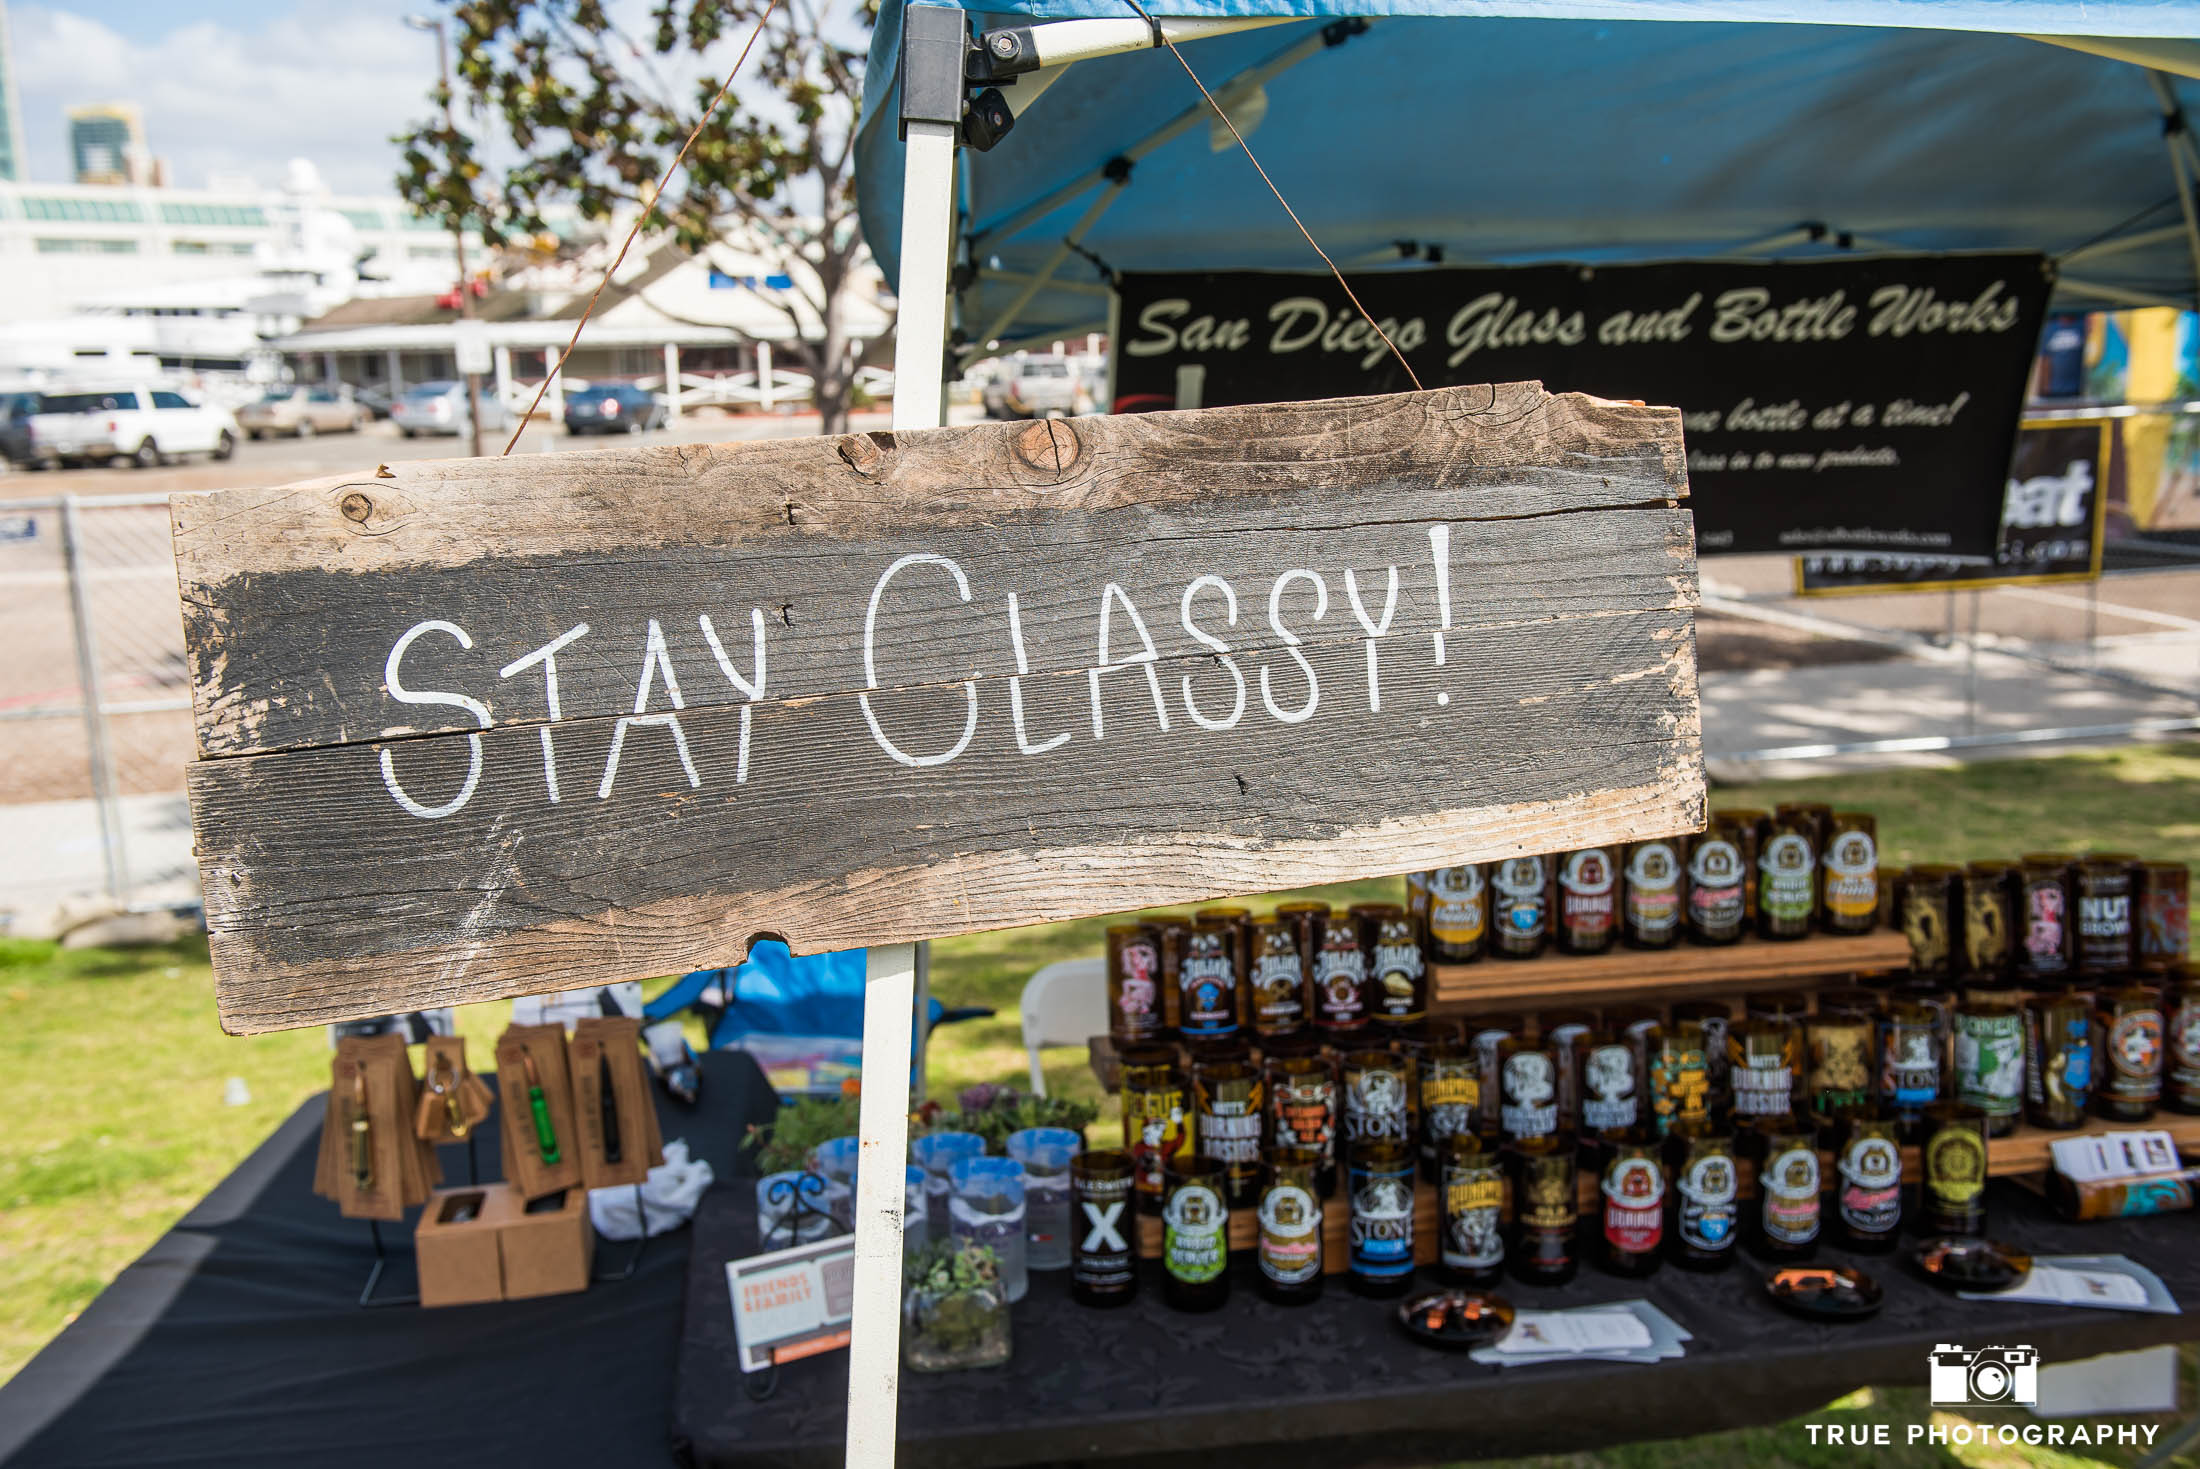 Stay Classy wooden sign outside booth at Best Coast Beer Fest